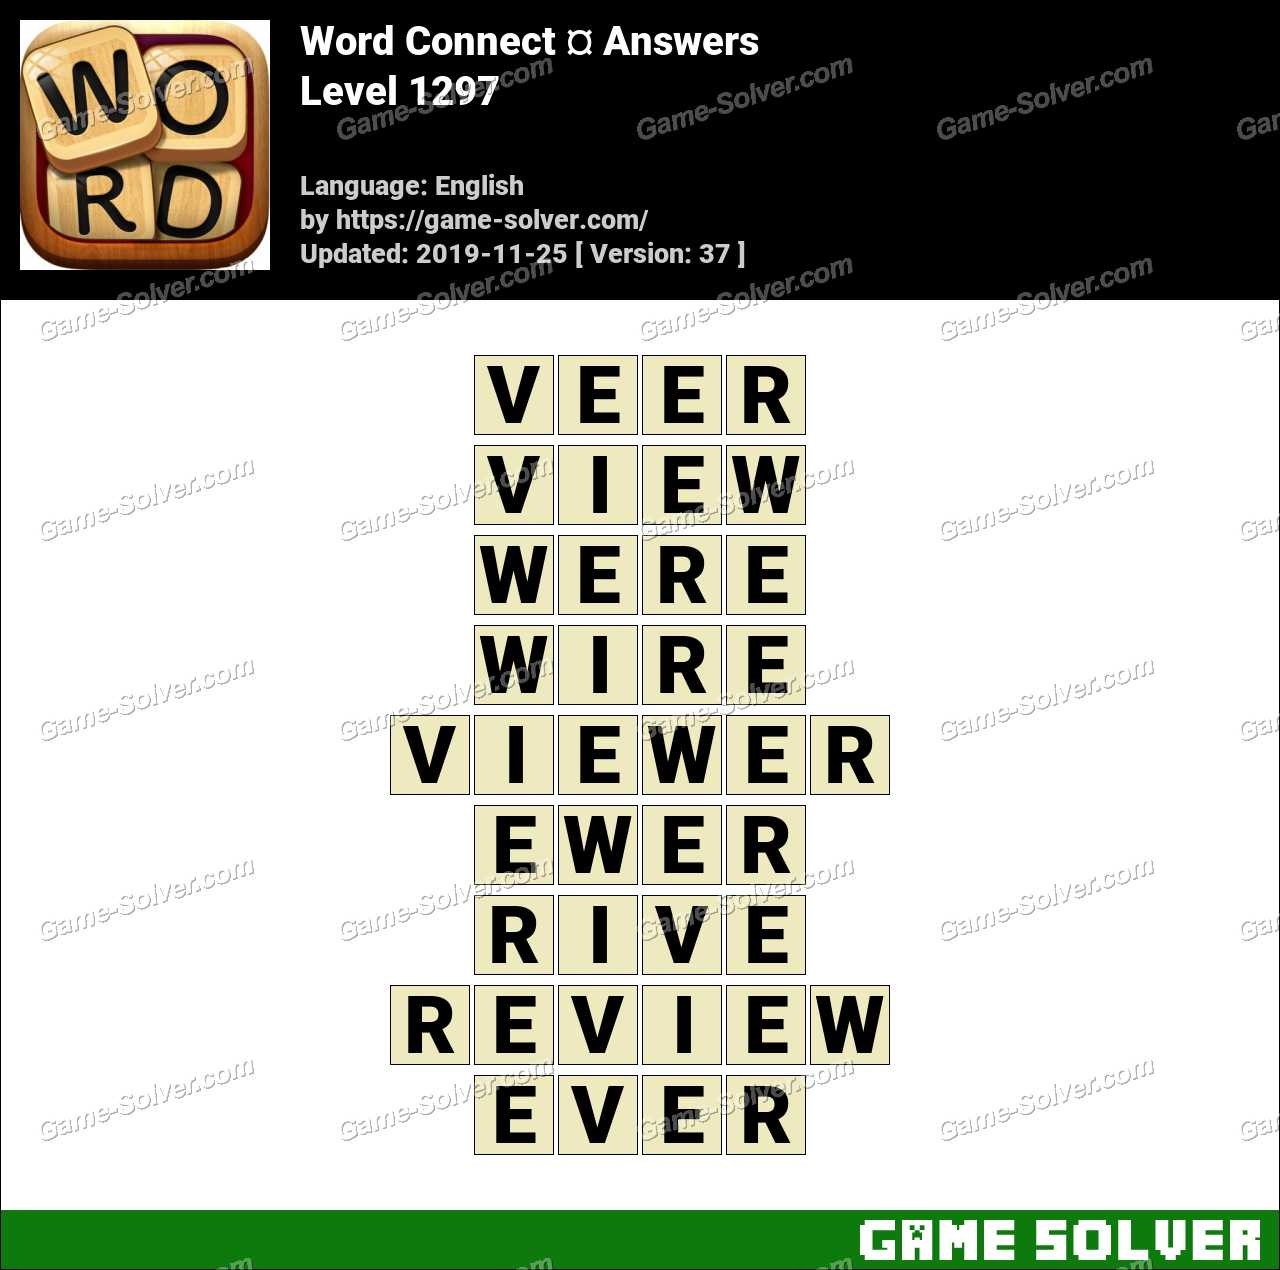 Word Connect Level 1297 Answers